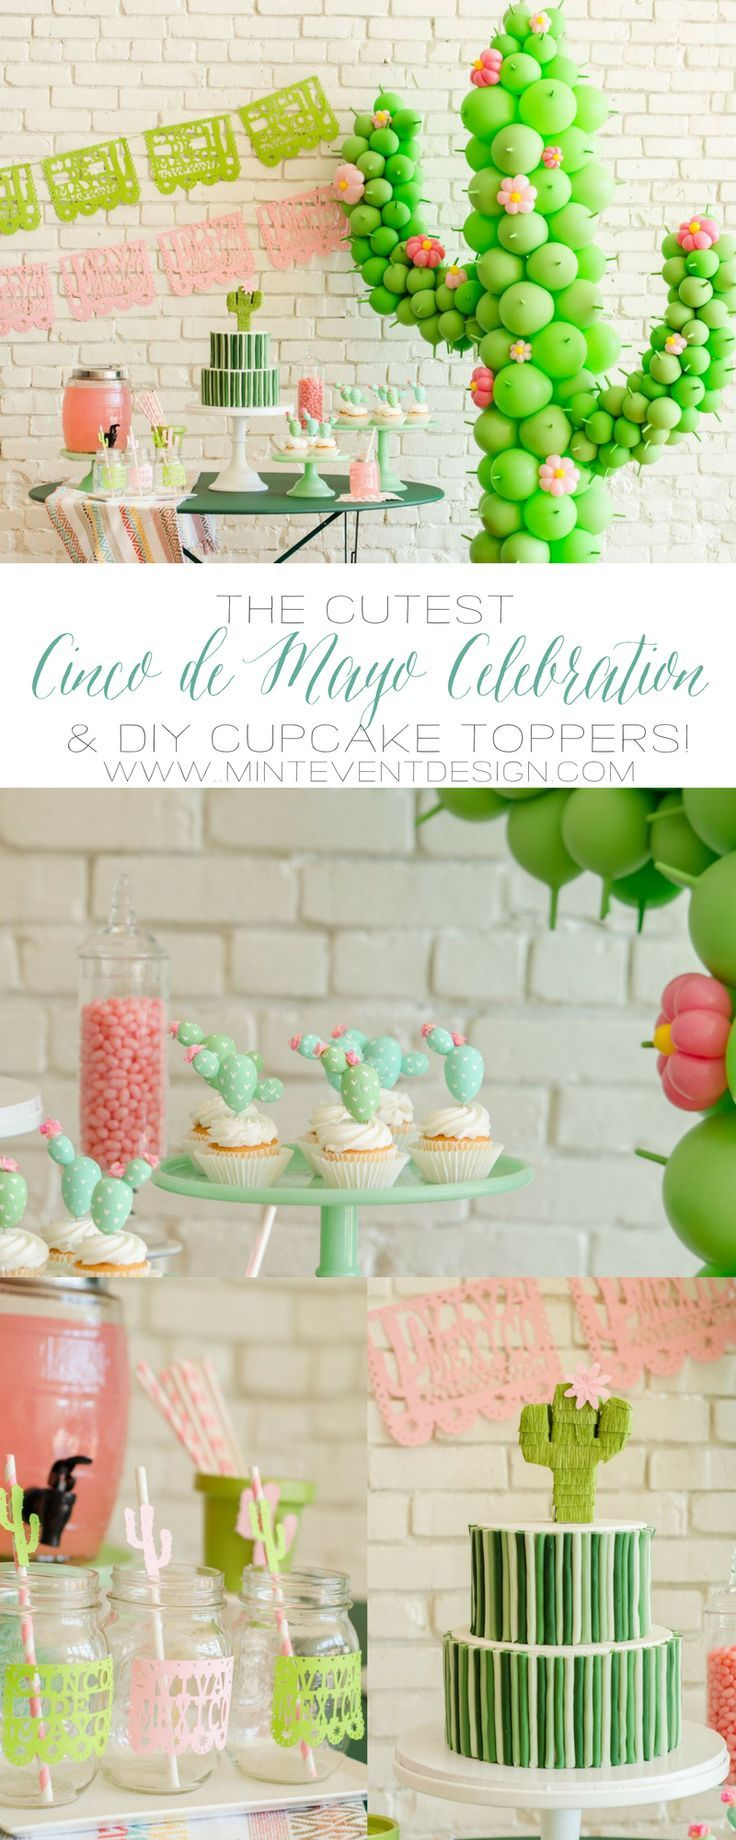 The Cutest Cinco de Mayo Celebration #decorationevent